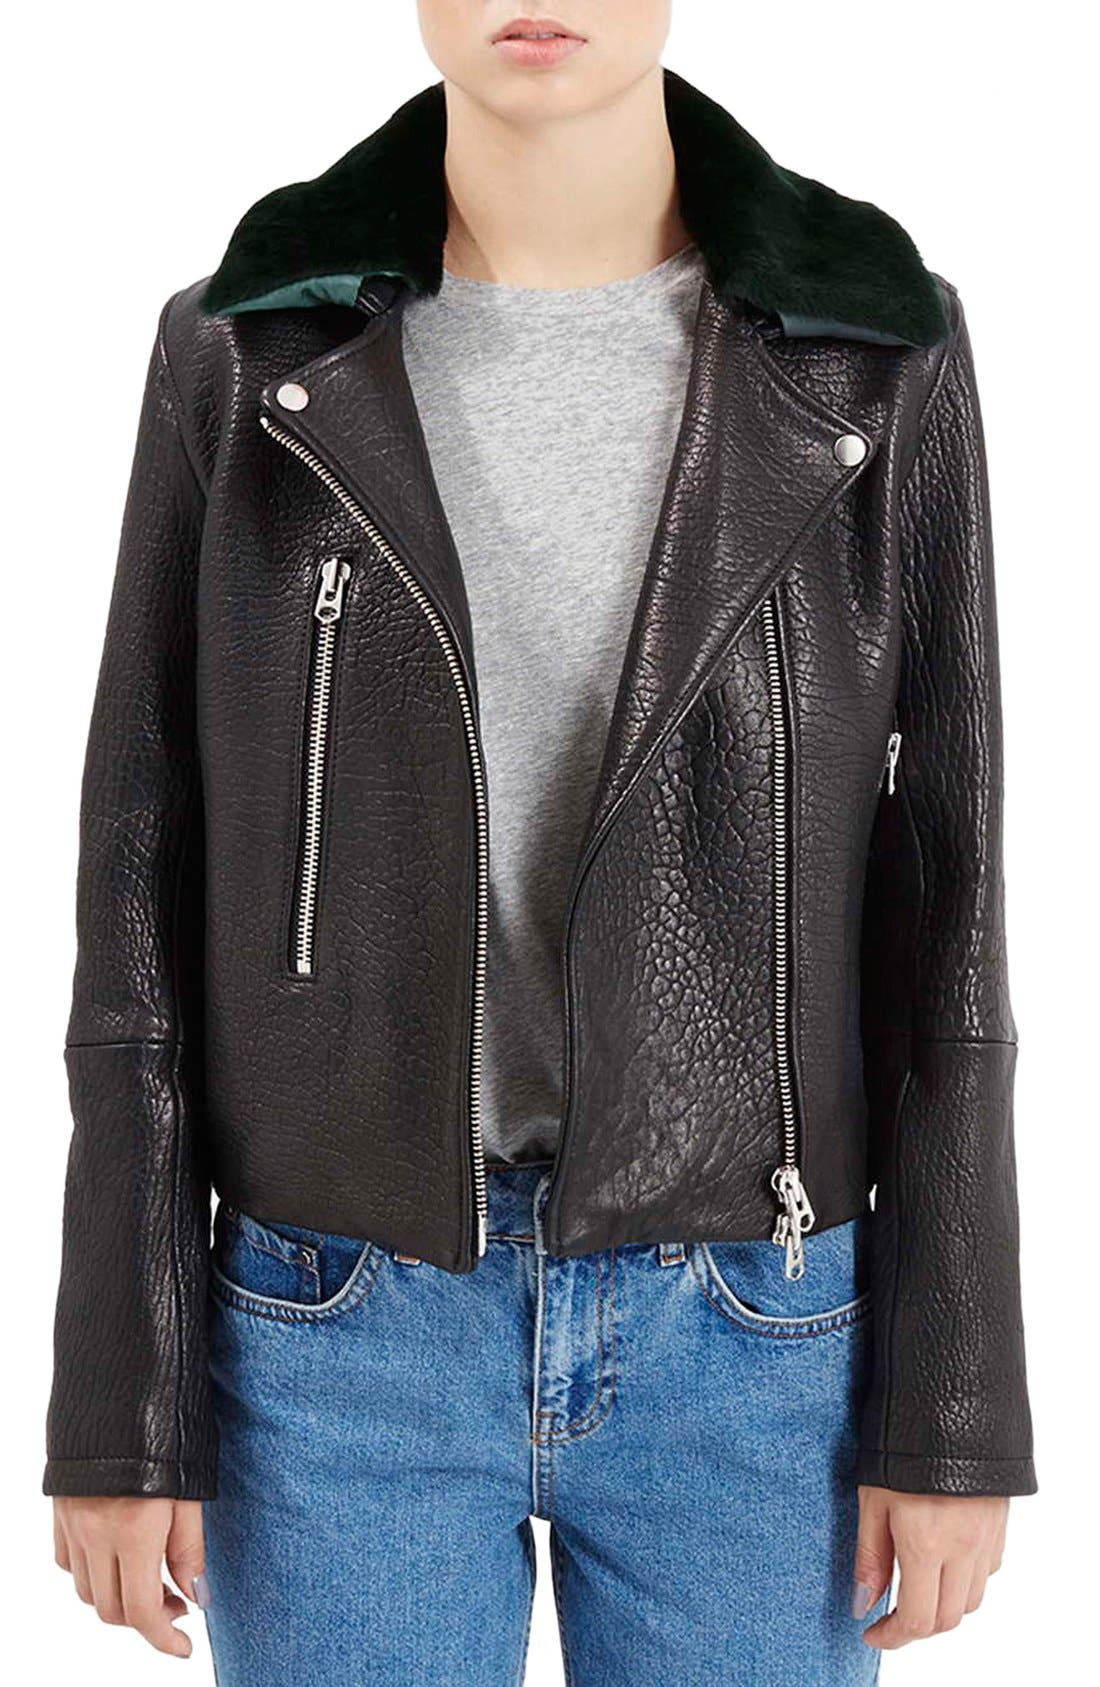 Main Image - Topshop Boutique Leather Moto Jacket with Shearling Collar